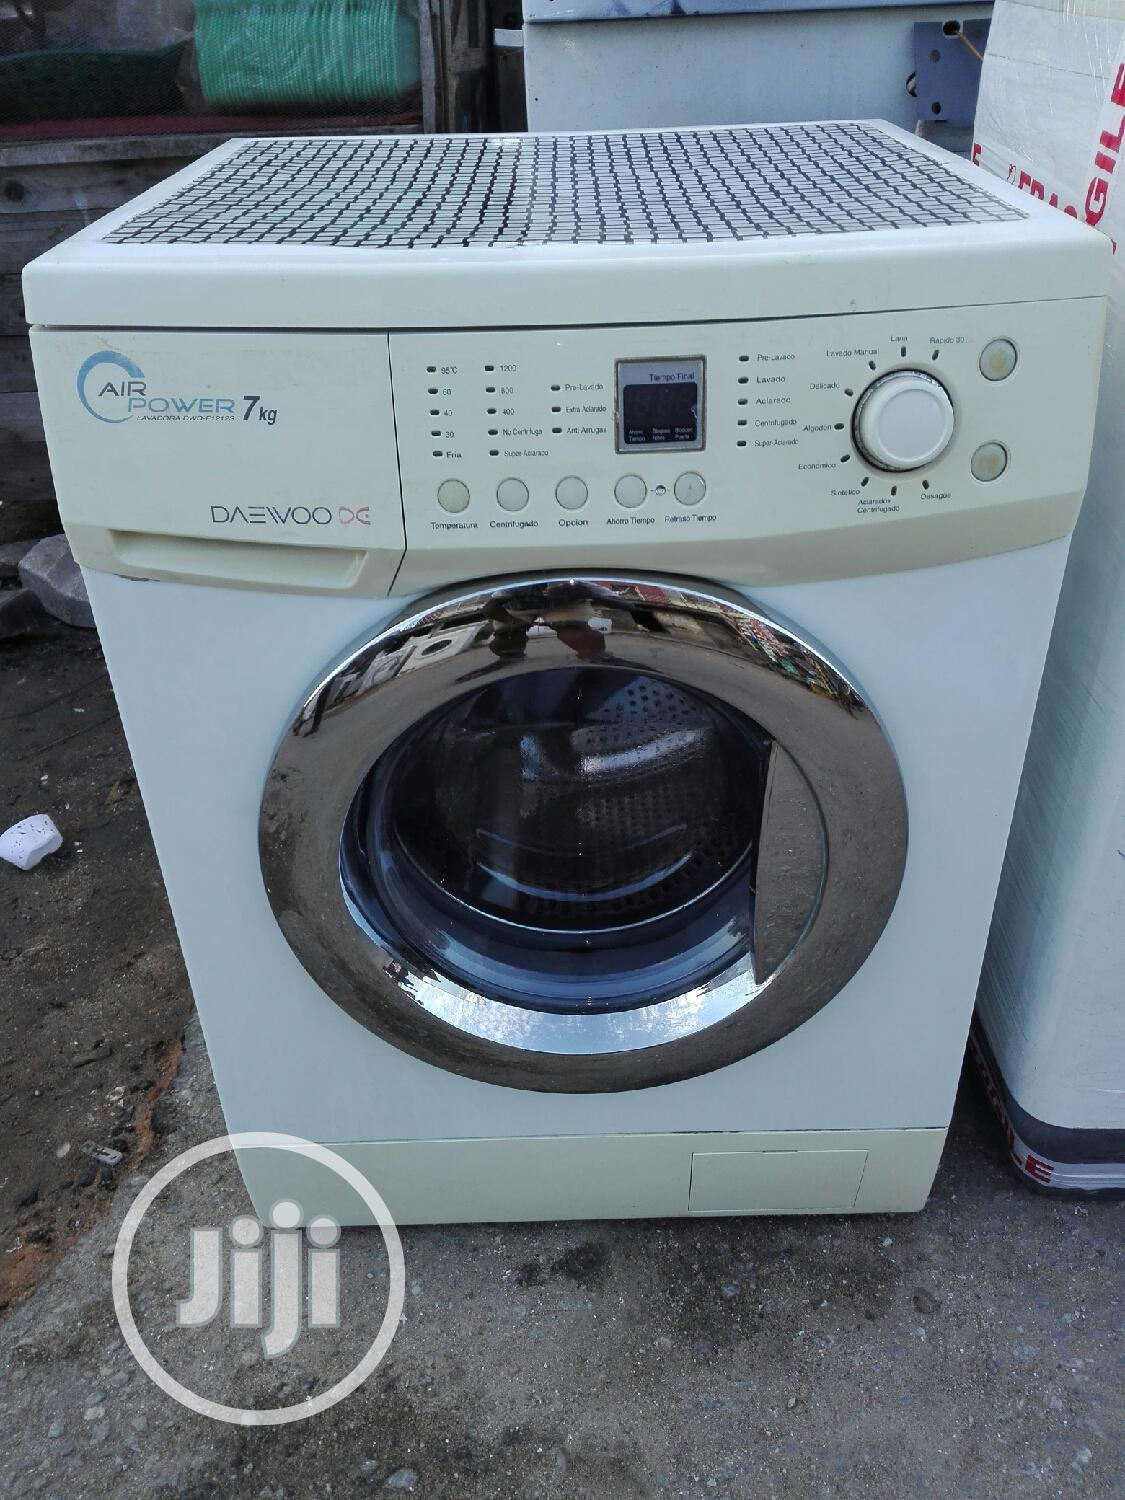 7kg Daewoo Washing Machine | Home Appliances for sale in Surulere, Lagos State, Nigeria